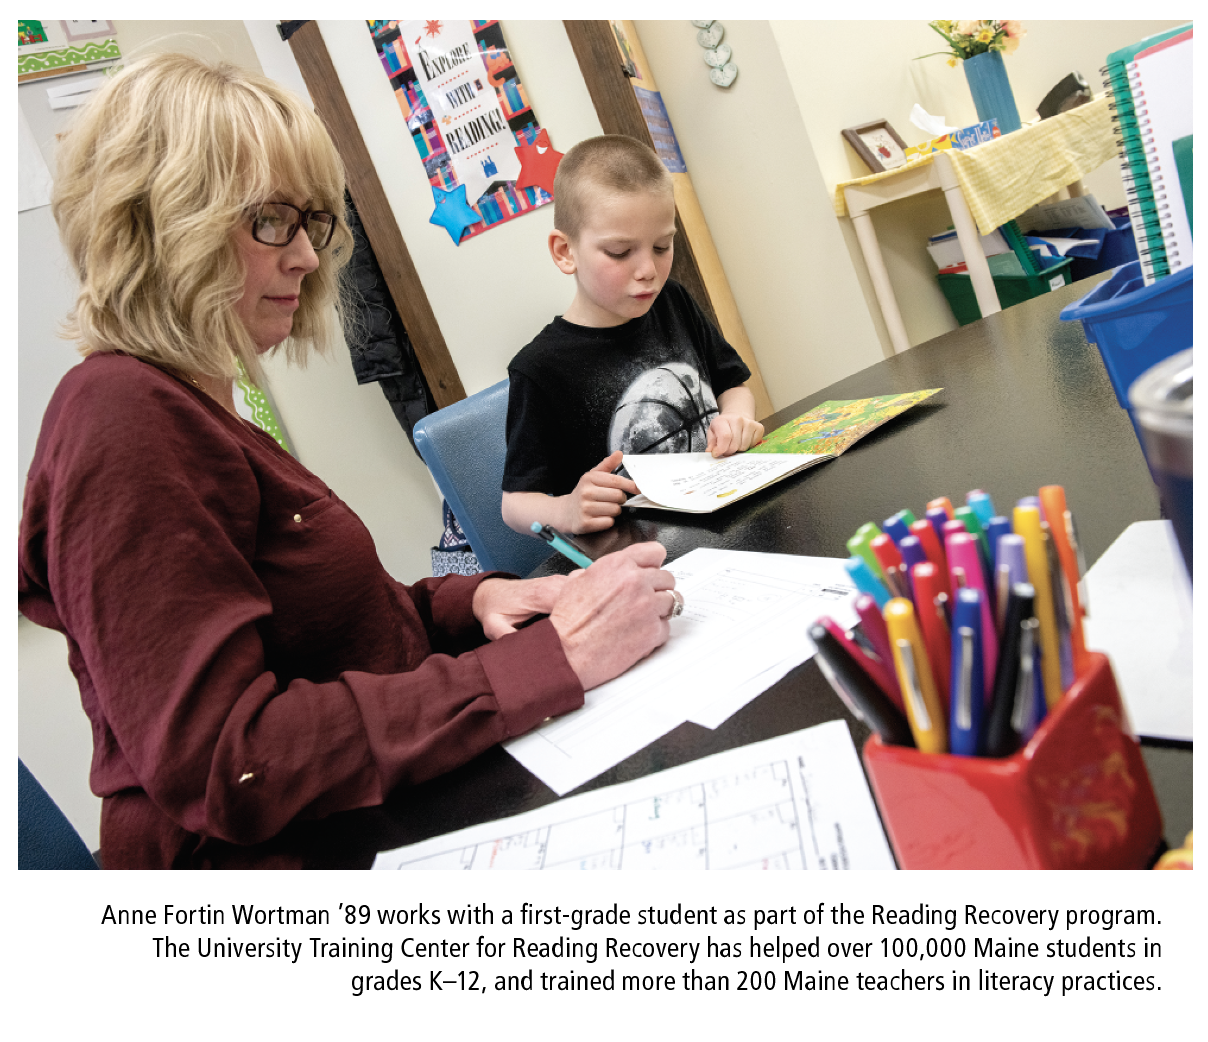 Anne Fortin Wortman '89 works with a first-grade student as part of the Reading Recovery program. The University Training Center for Reading Recovery has helped over 100,000 Maine students in grades K–12, and trained more than 200 Maine teachers in literacy practices.